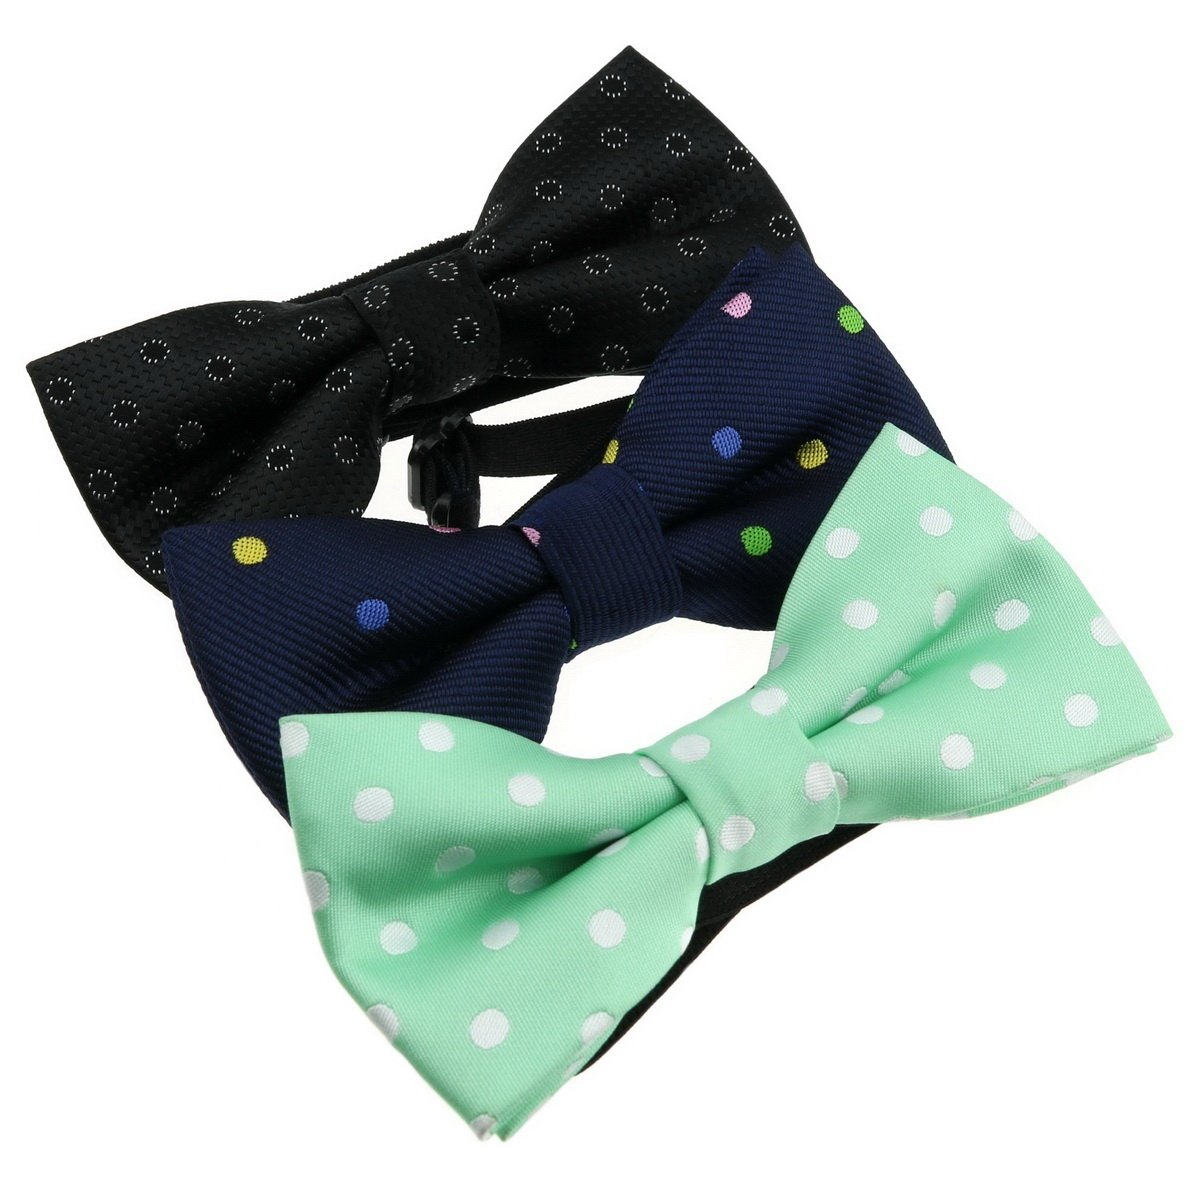 Ukerdo Polka Dot Bowtie Bow Ties Special Design for Unisex Kids Neckwear - 3pcs MixBowtie-056